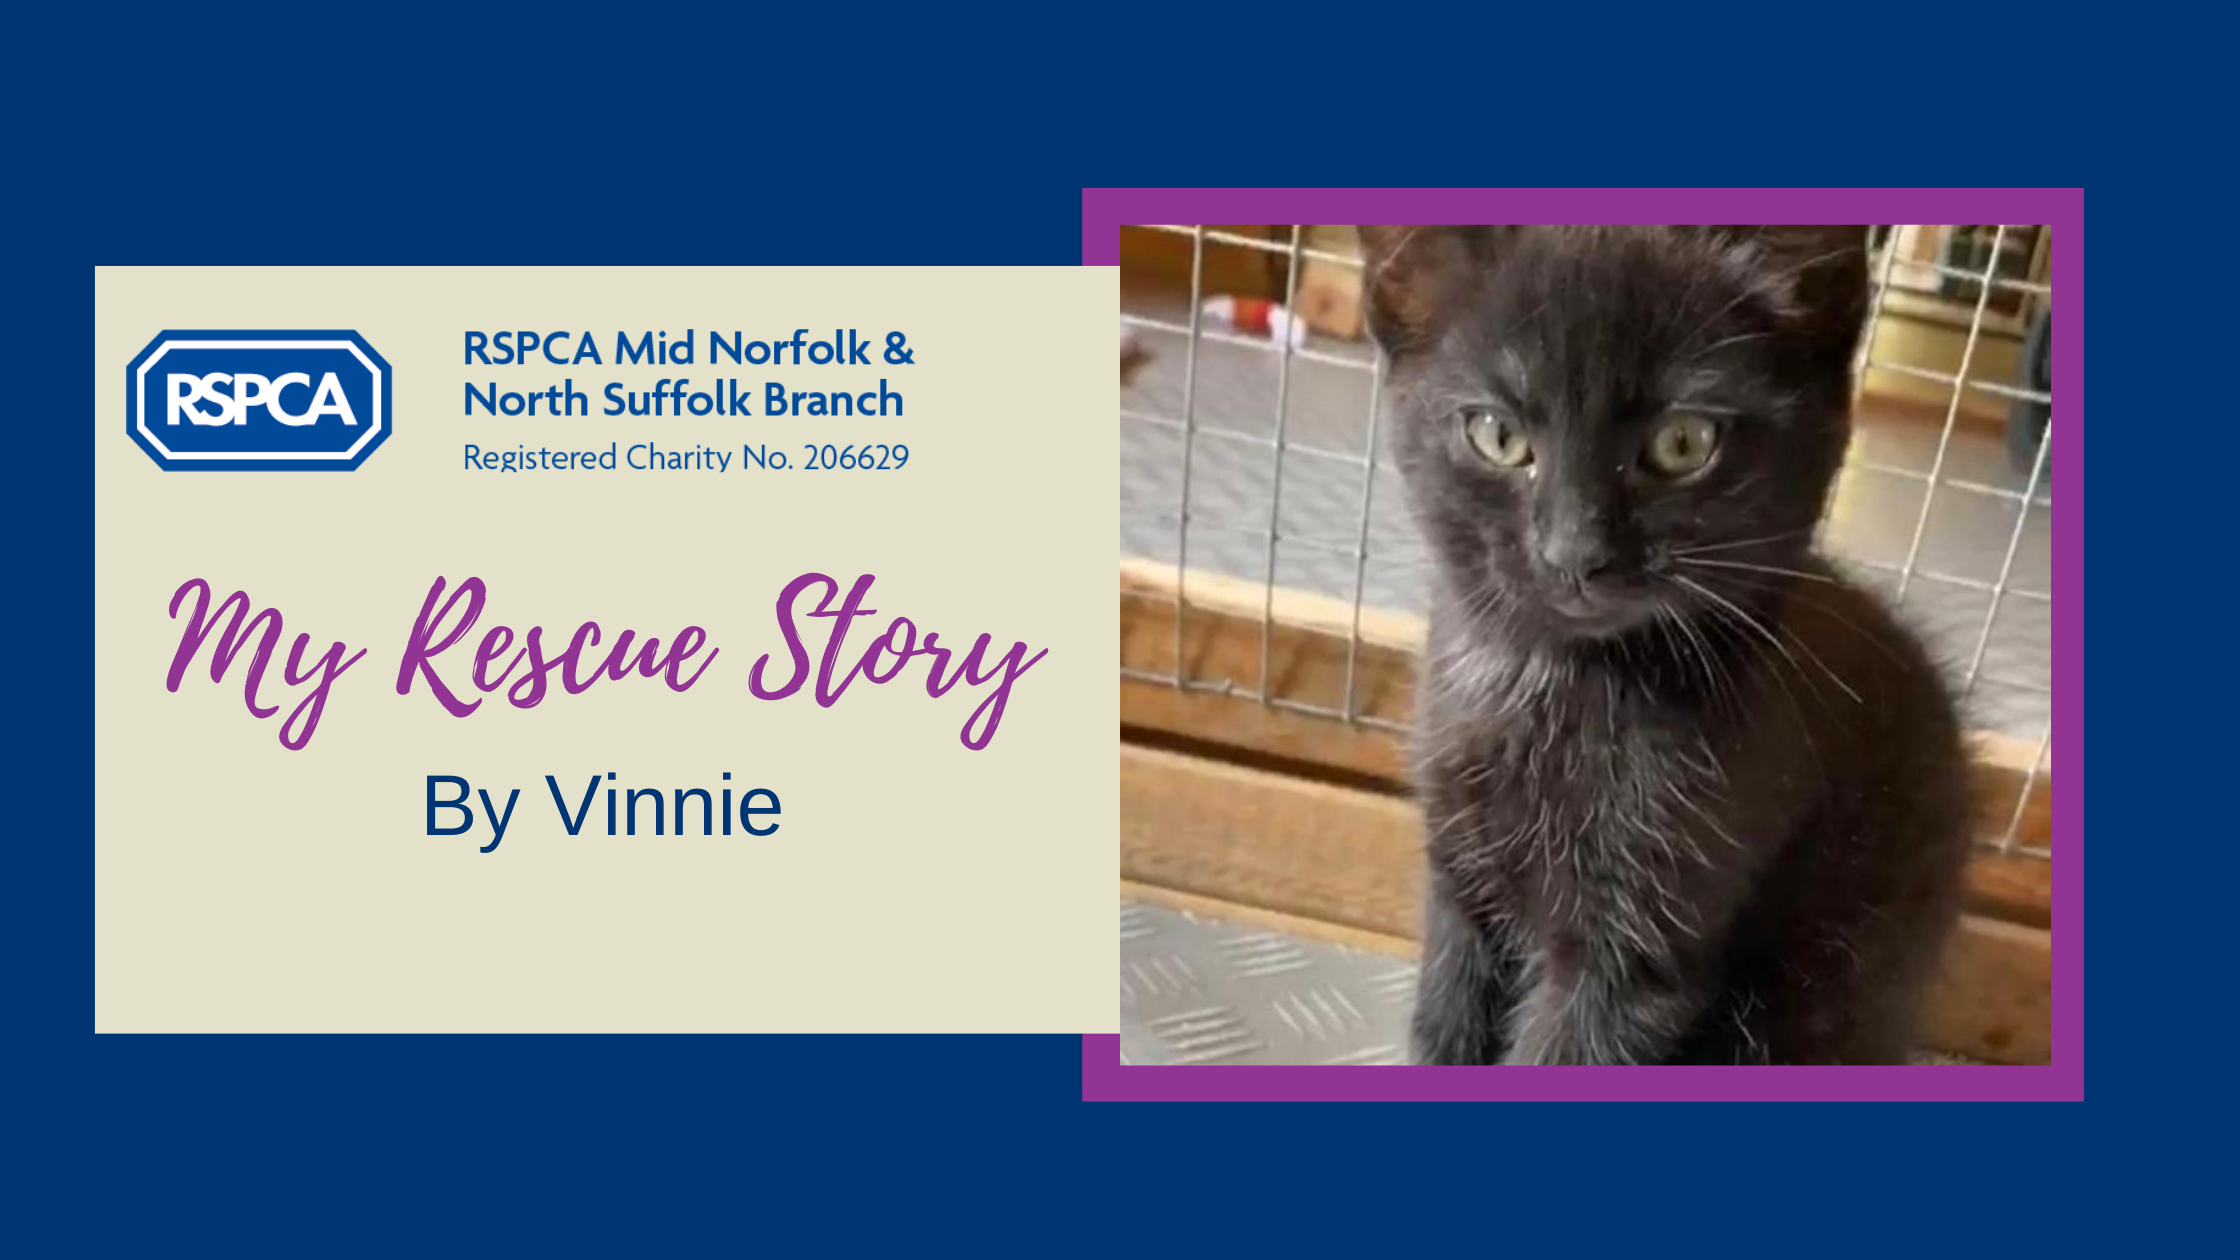 My rescue story